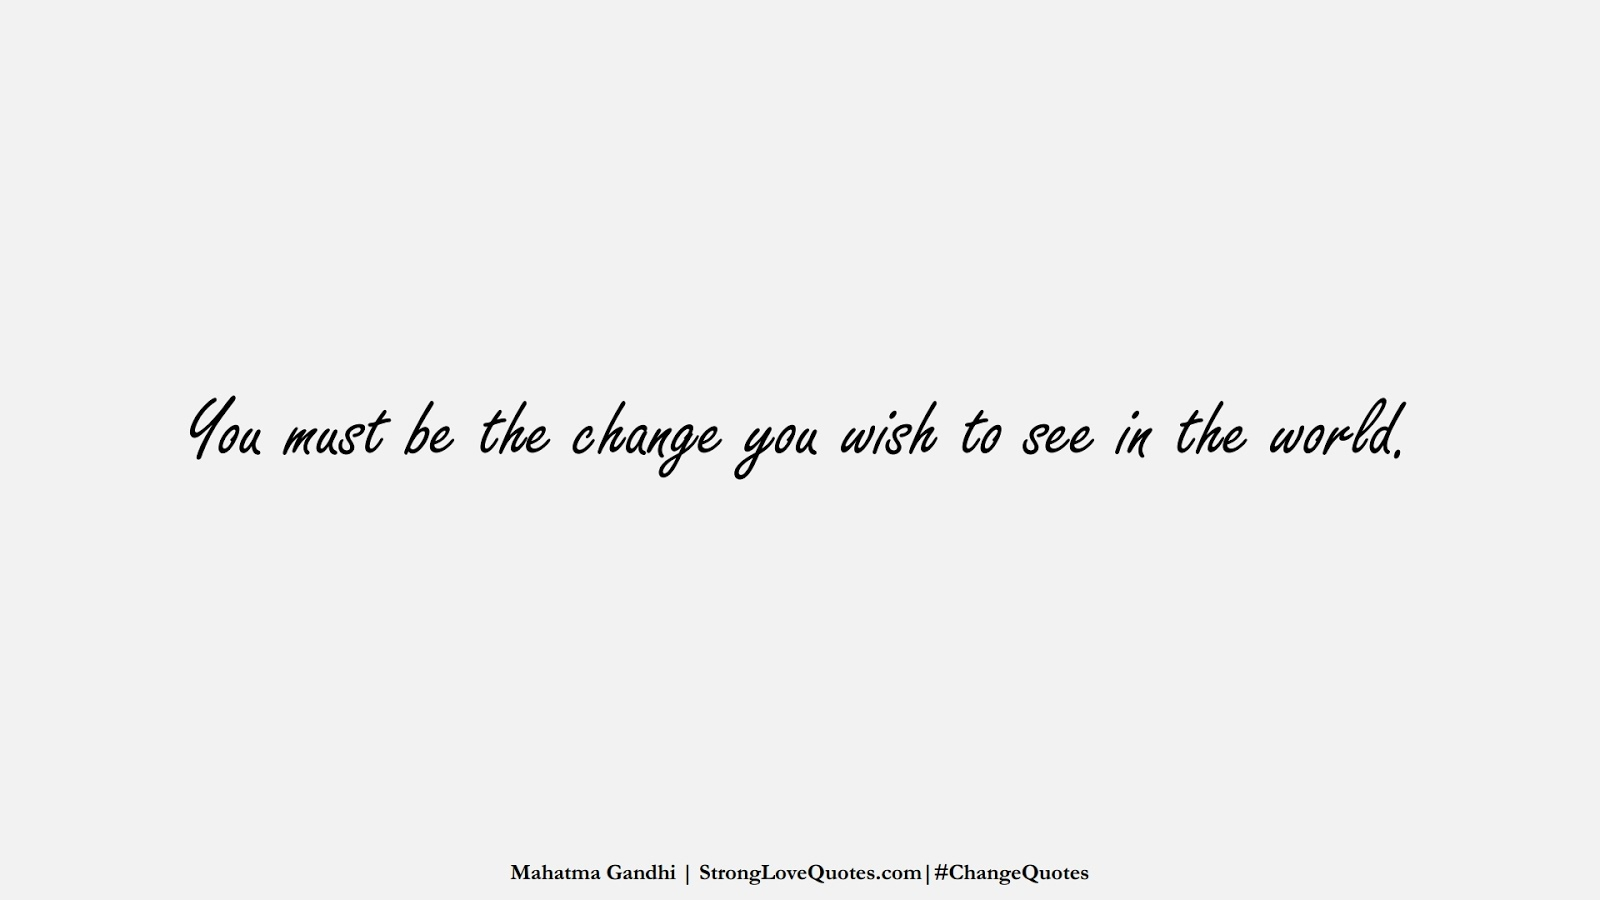 You must be the change you wish to see in the world. (Mahatma Gandhi);  #ChangeQuotes